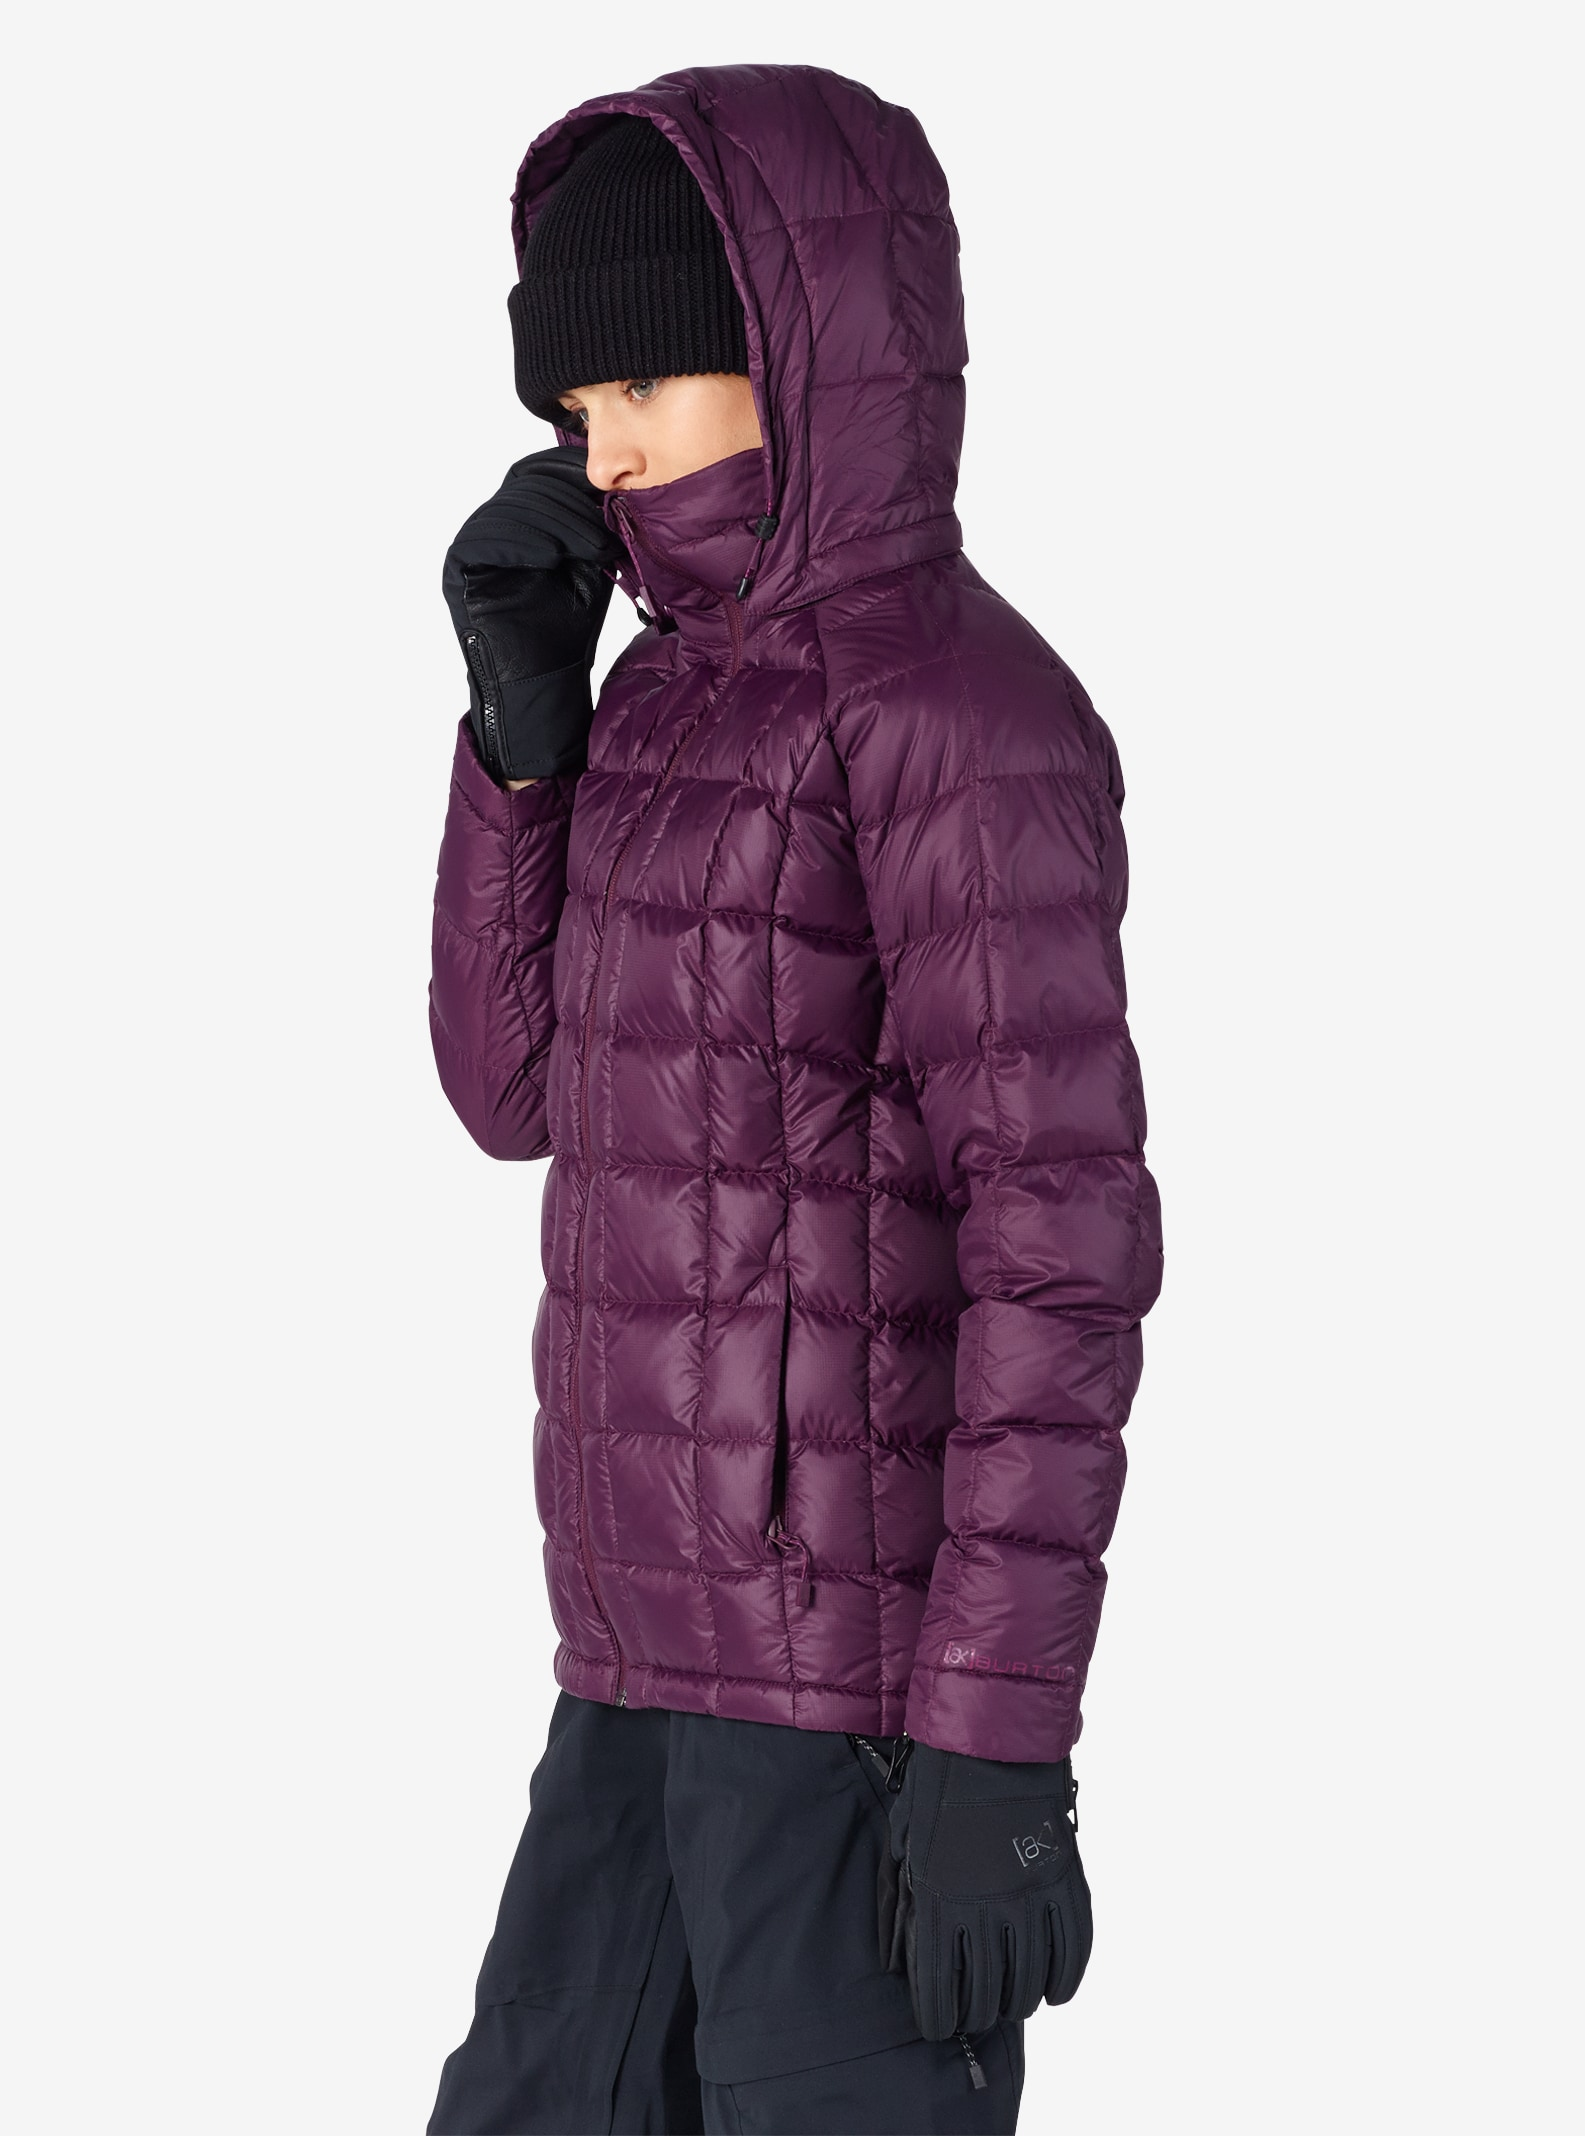 Women's Burton [ak] Baker Down Insulator Jacket shown in Starling